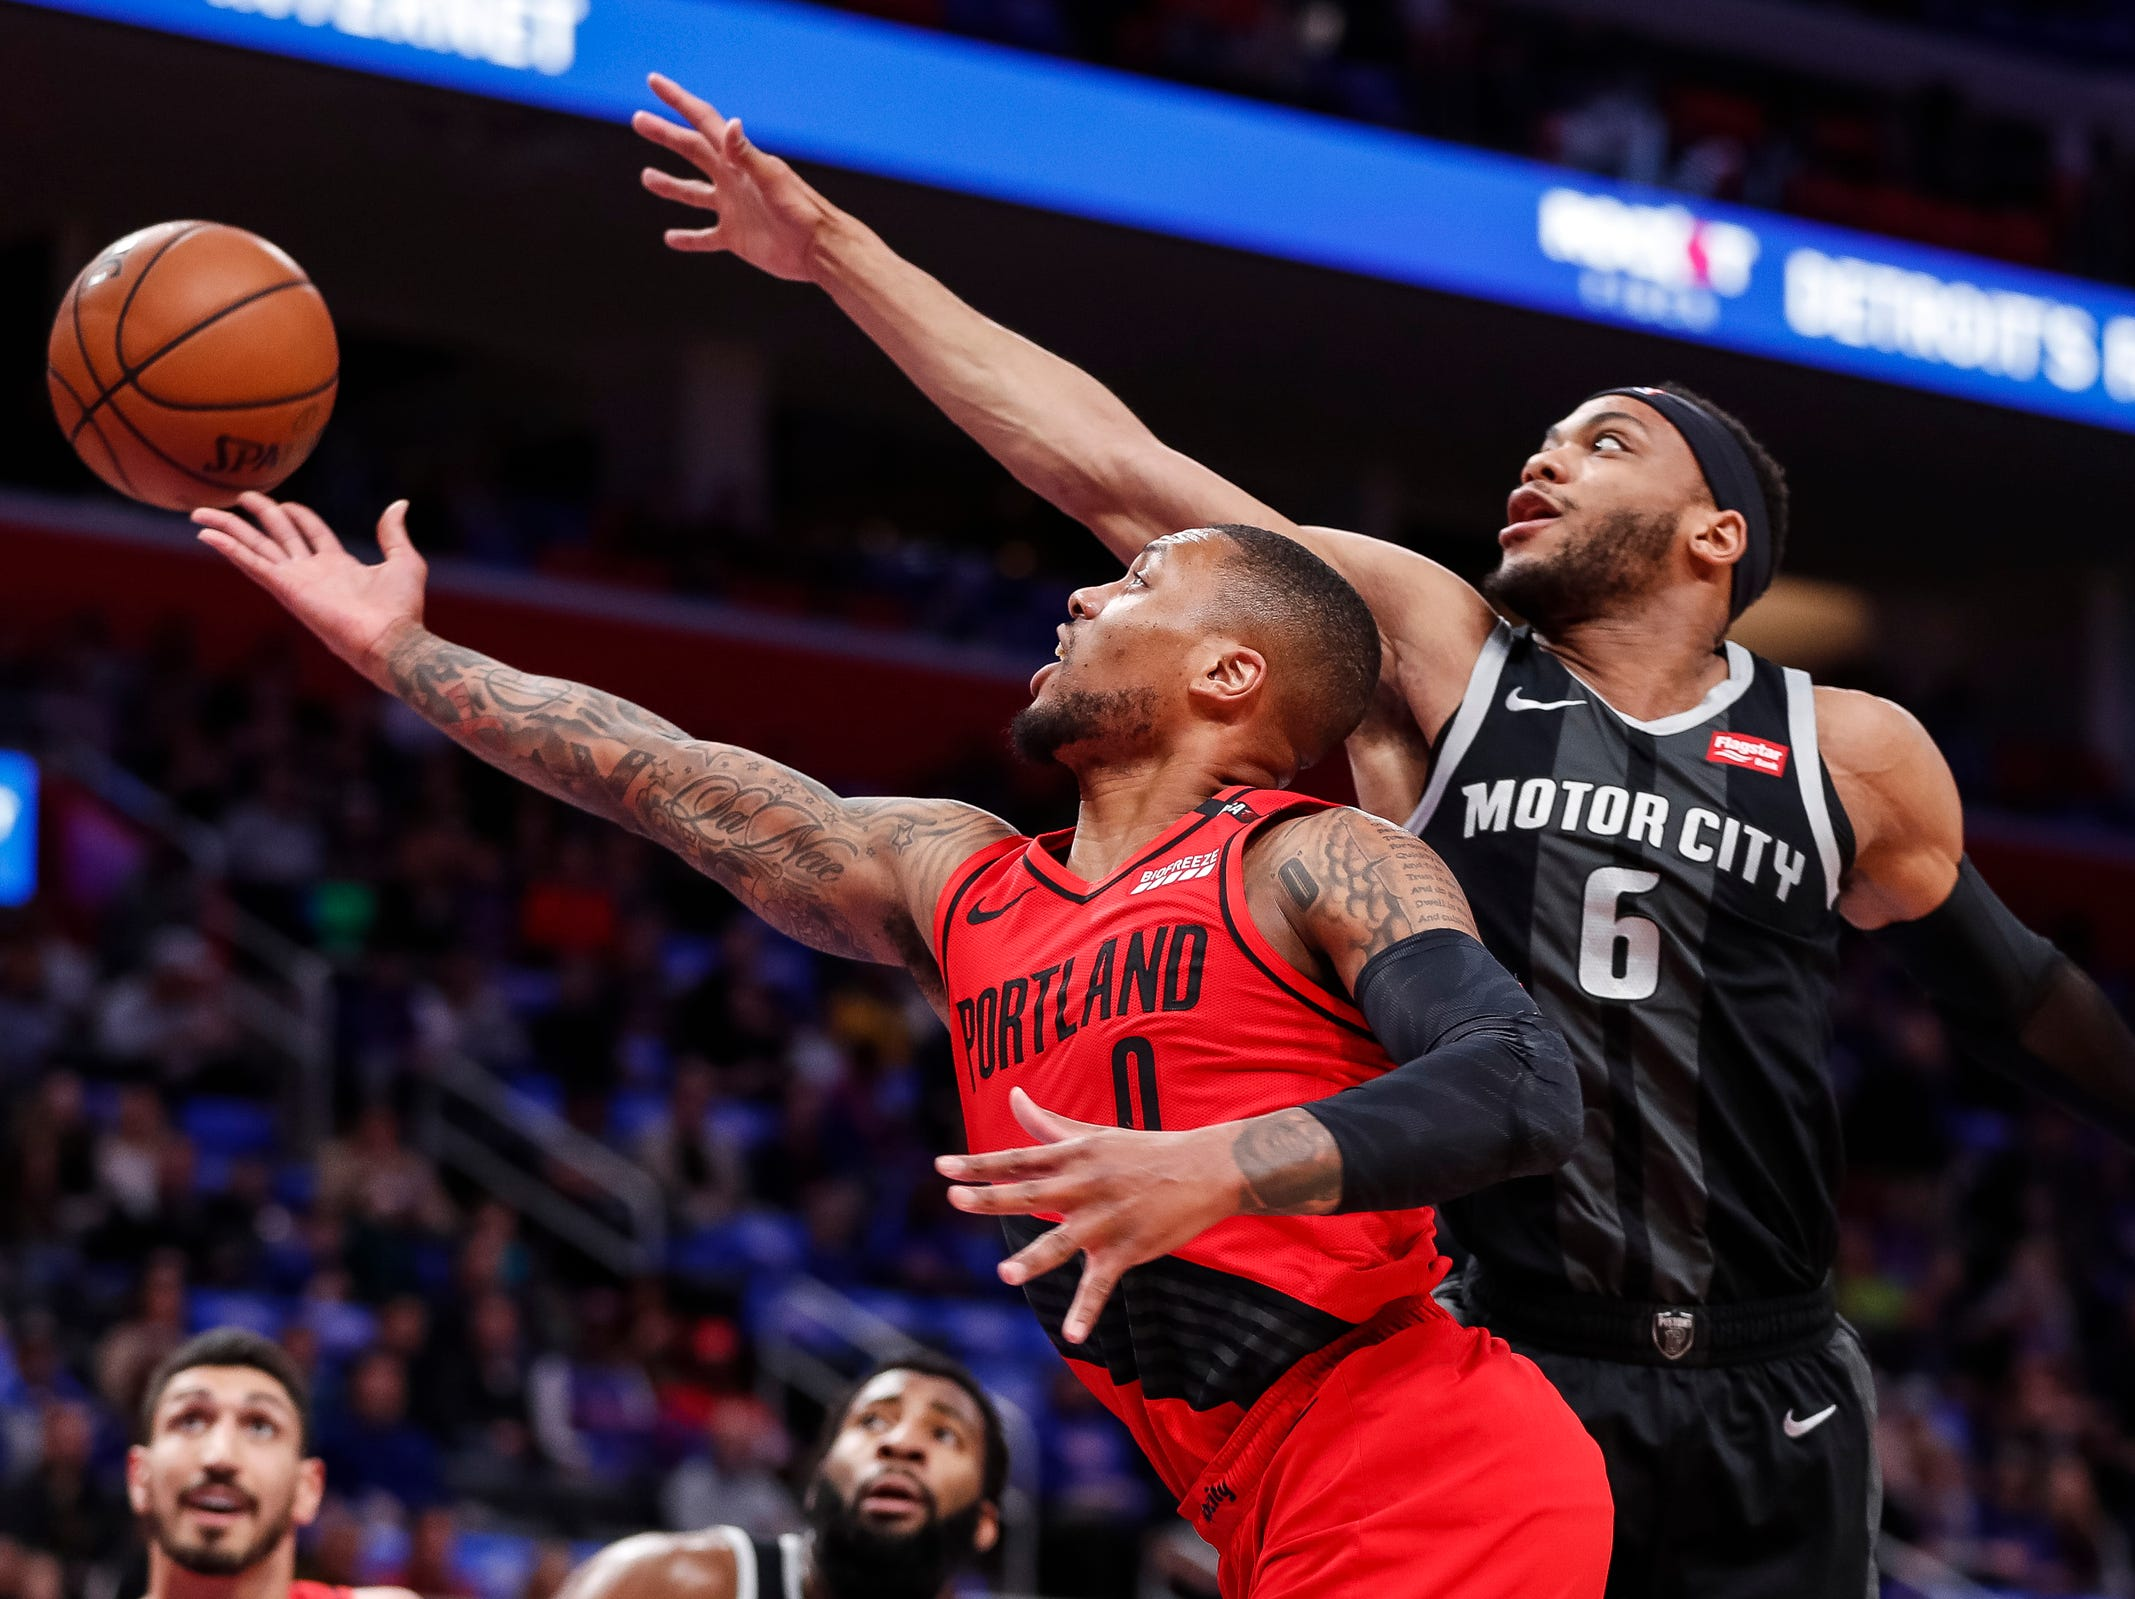 Trail Blazers guard Damian Lillard (0) makes a layup against Pistons guard Bruce Brown (6) during the first half at the Little Caesars Arena in Detroit, Saturday, March 30, 2019.